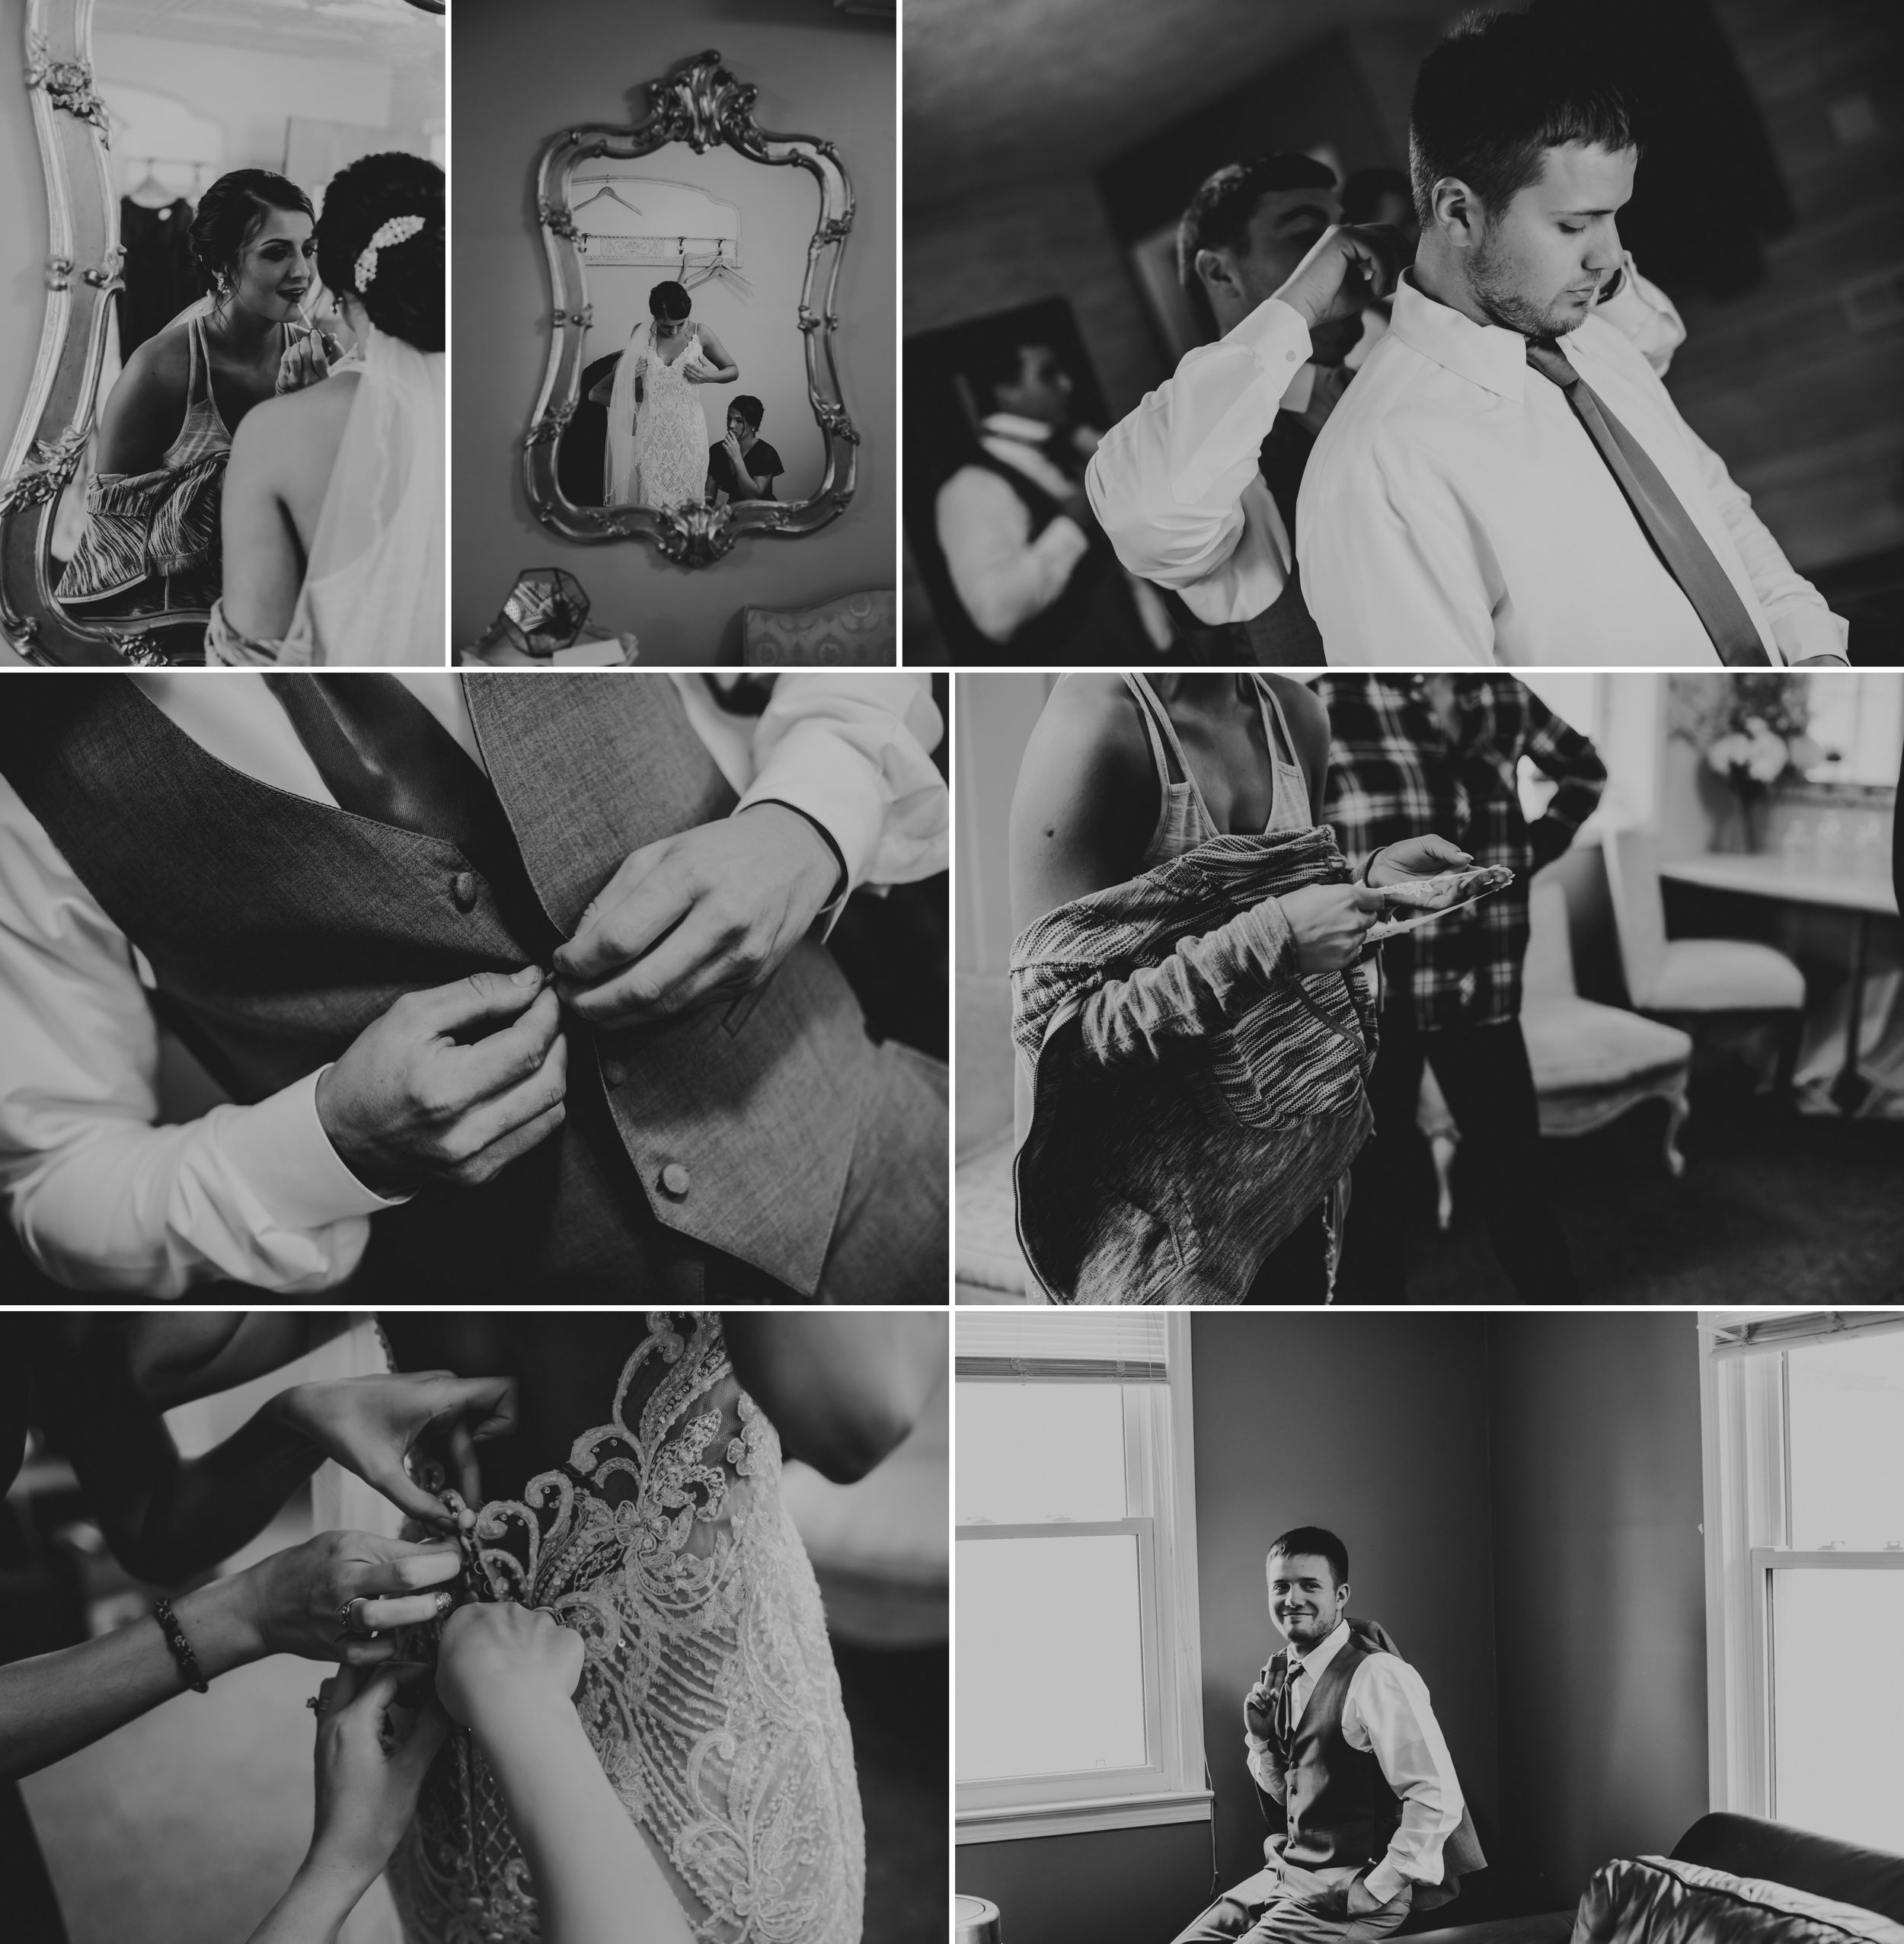 Black and white collage of the bride and groom getting dressed for the wedding.